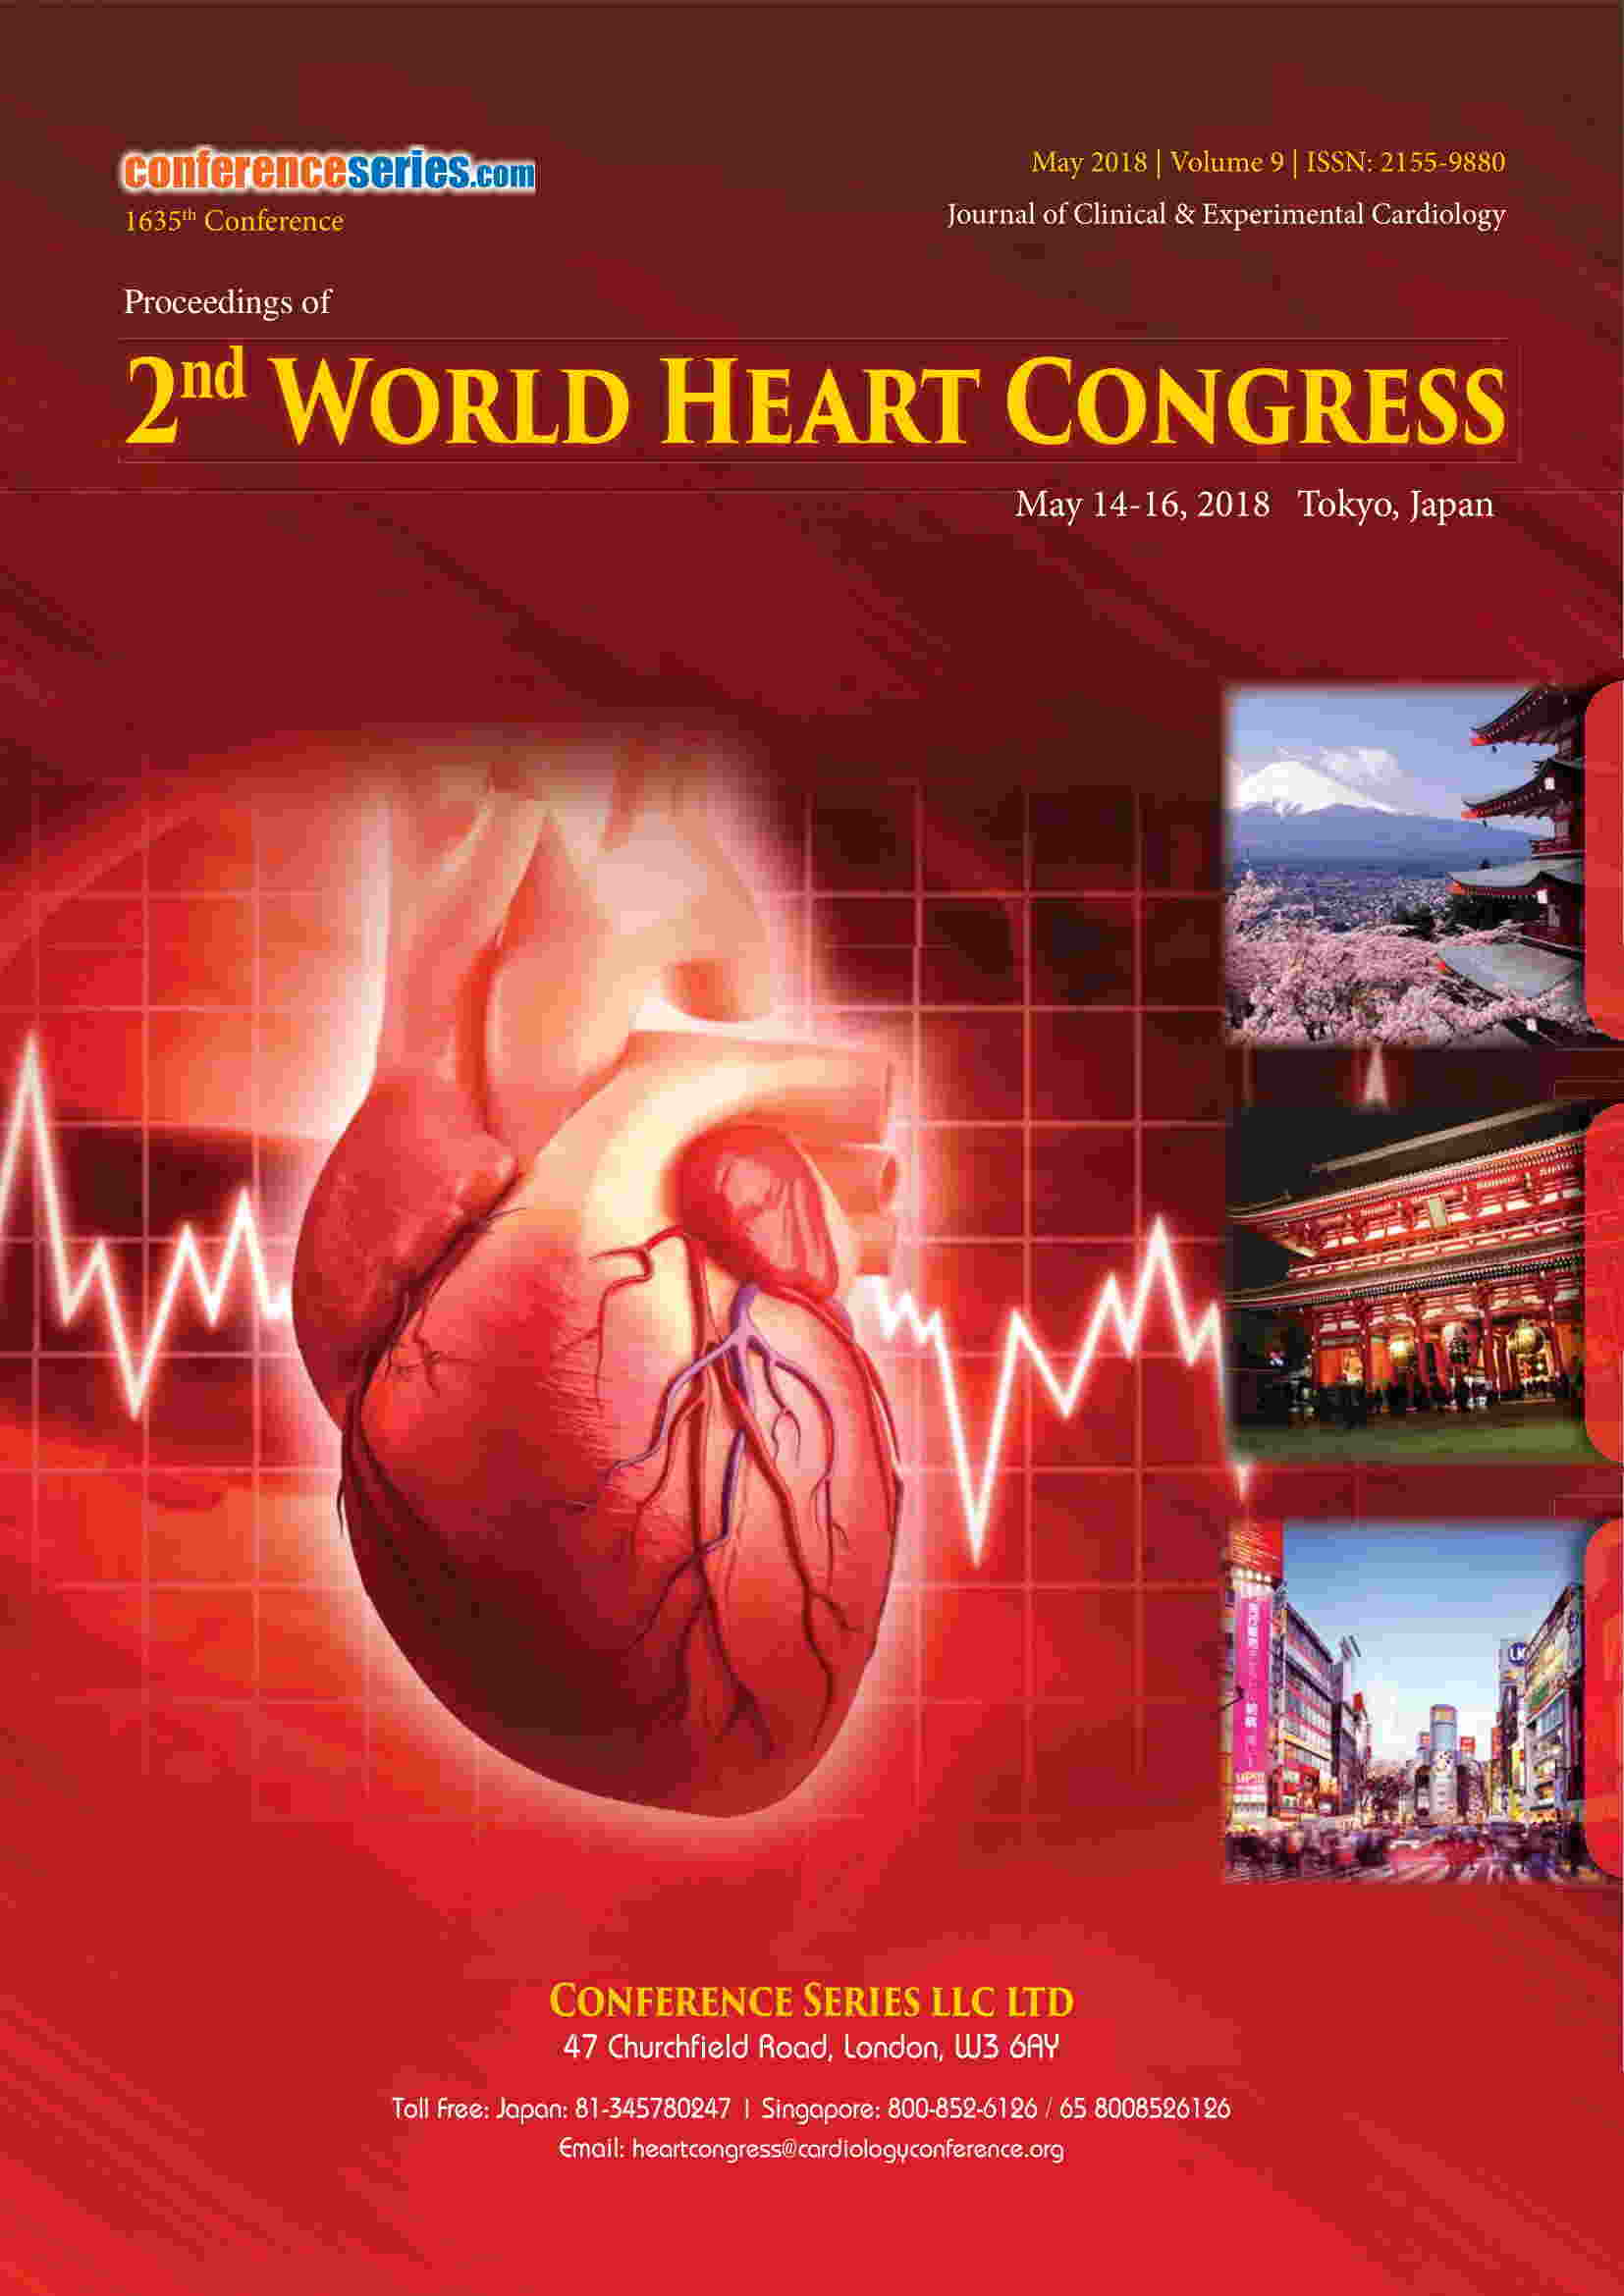 2nd World Heart Congress